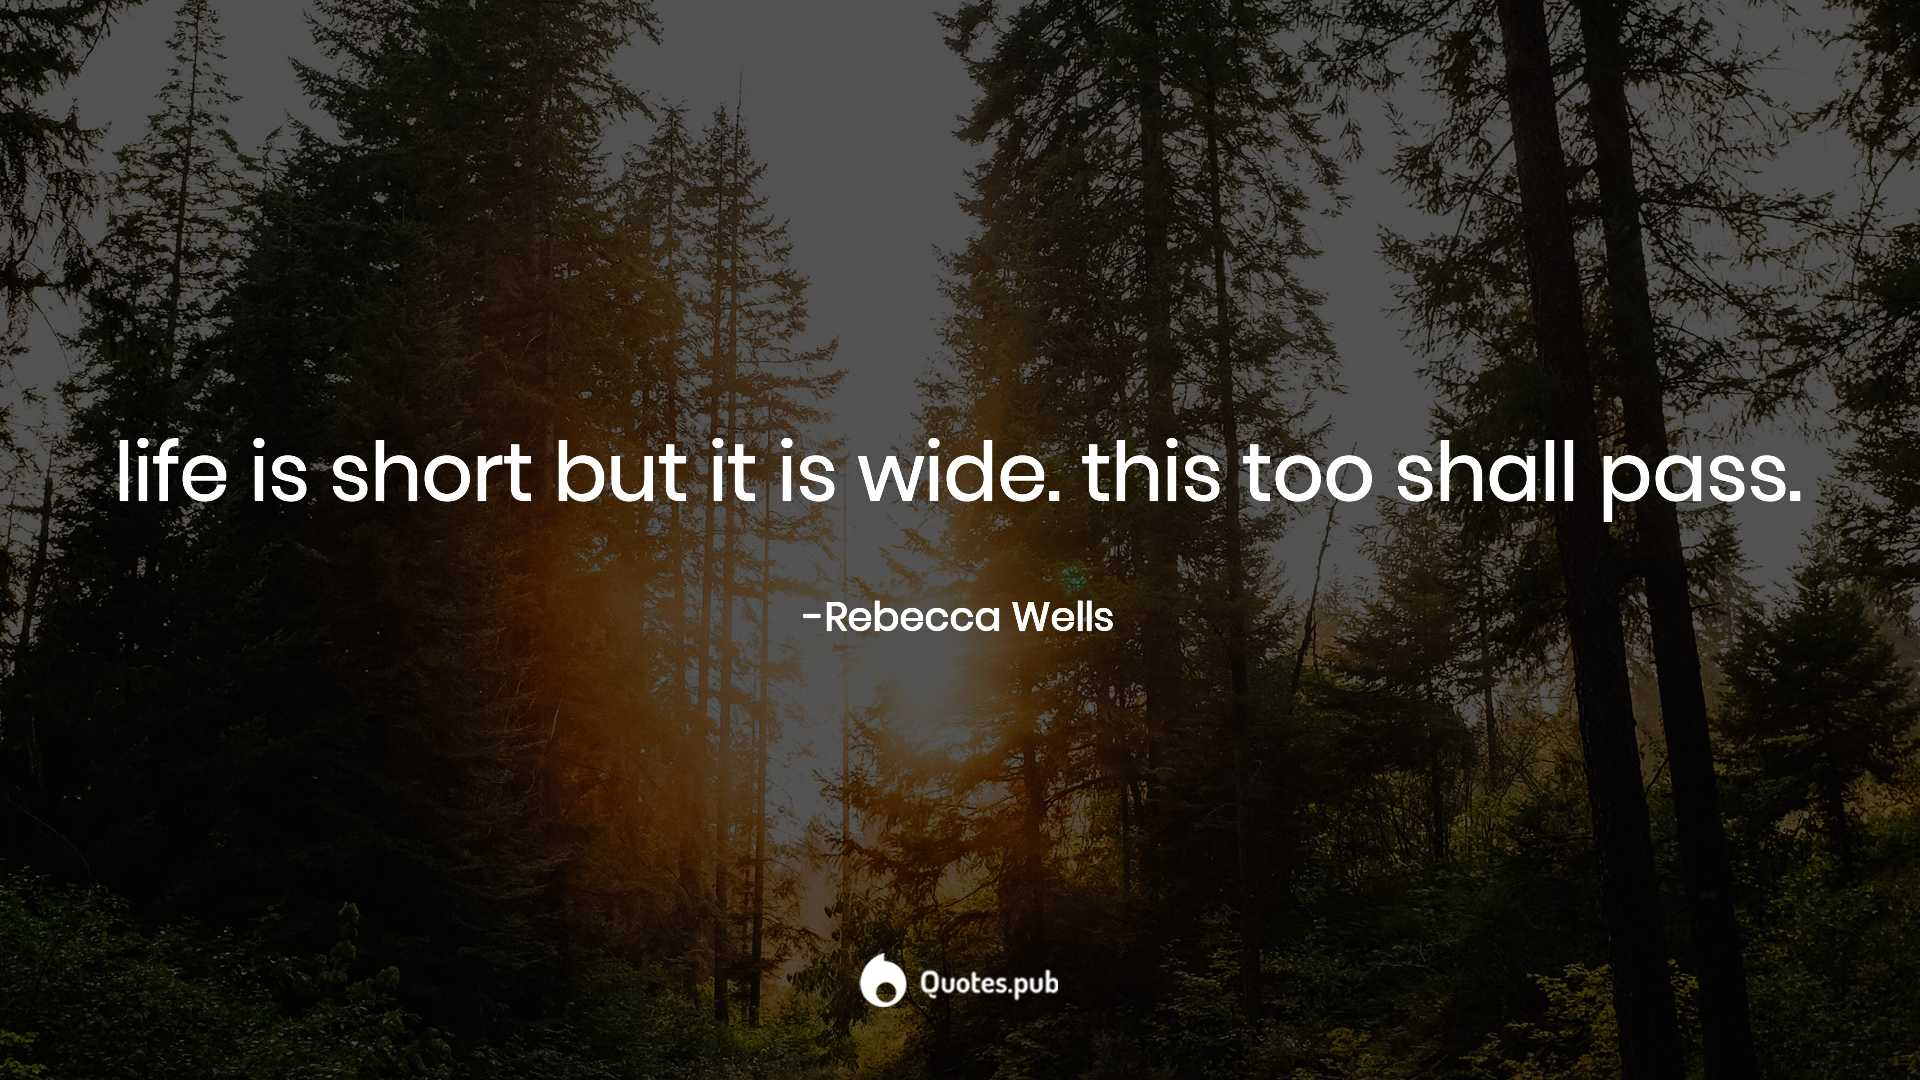 Life Is Short But It Is Wide This Too Rebecca Wells Quotes Pub